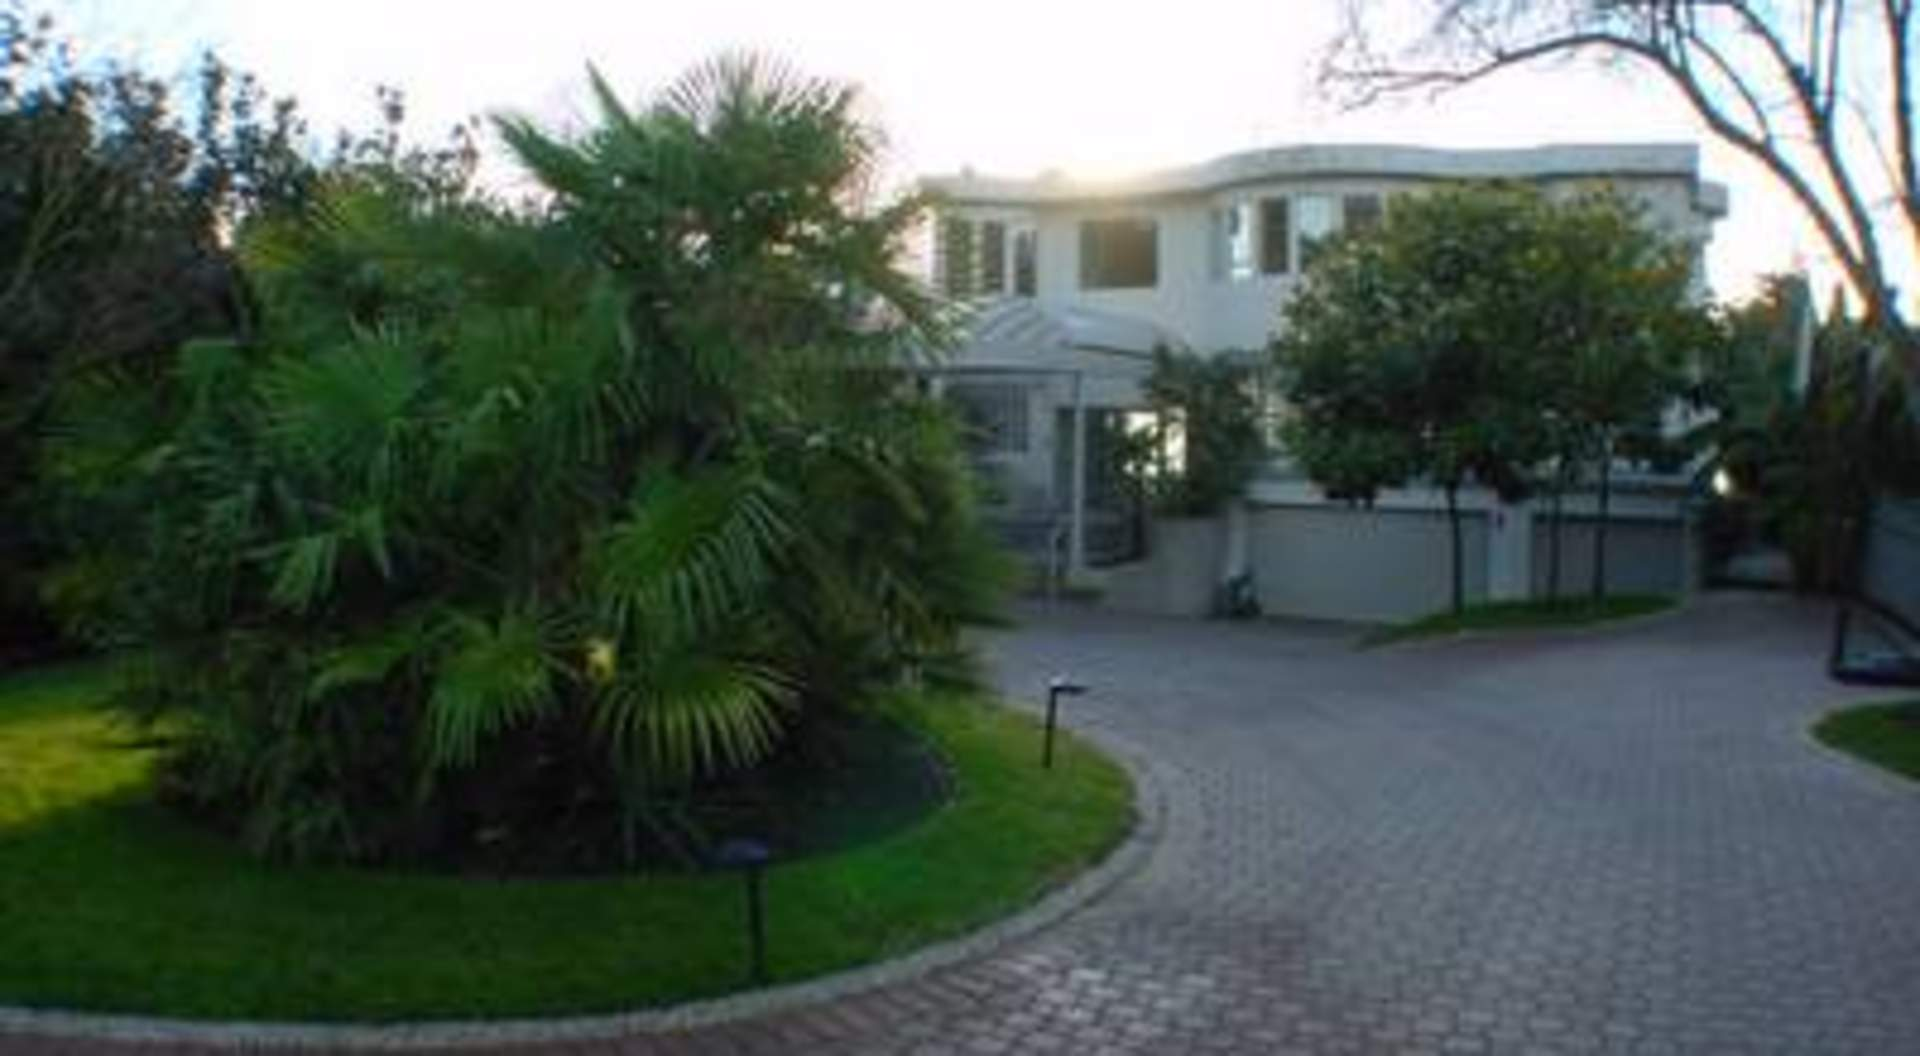 Mature Level Garden with Palm Trees